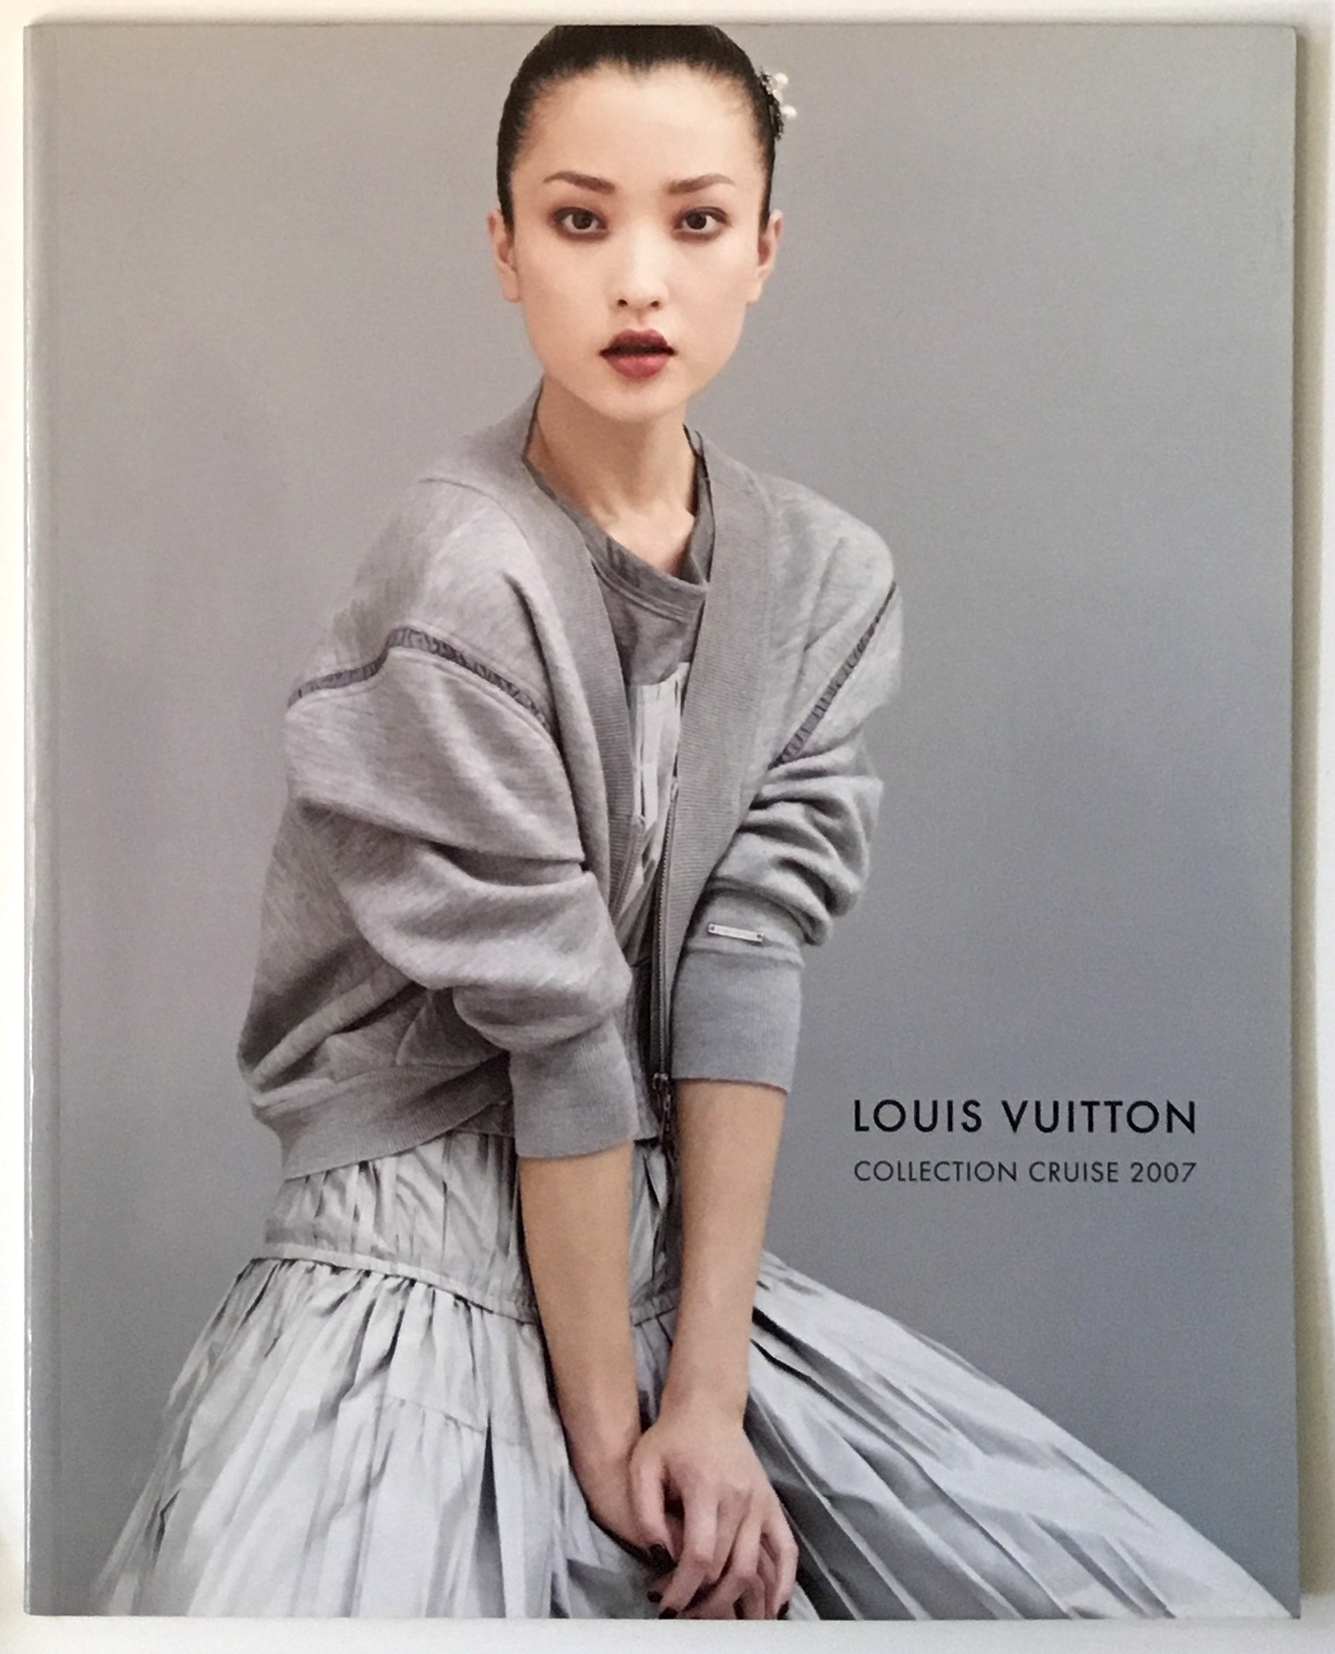 Louis Vuitton Fashion Catalog Cruise Men Women RTW Cover Croisiere Paris Marc Jacobs November Vacation 2007